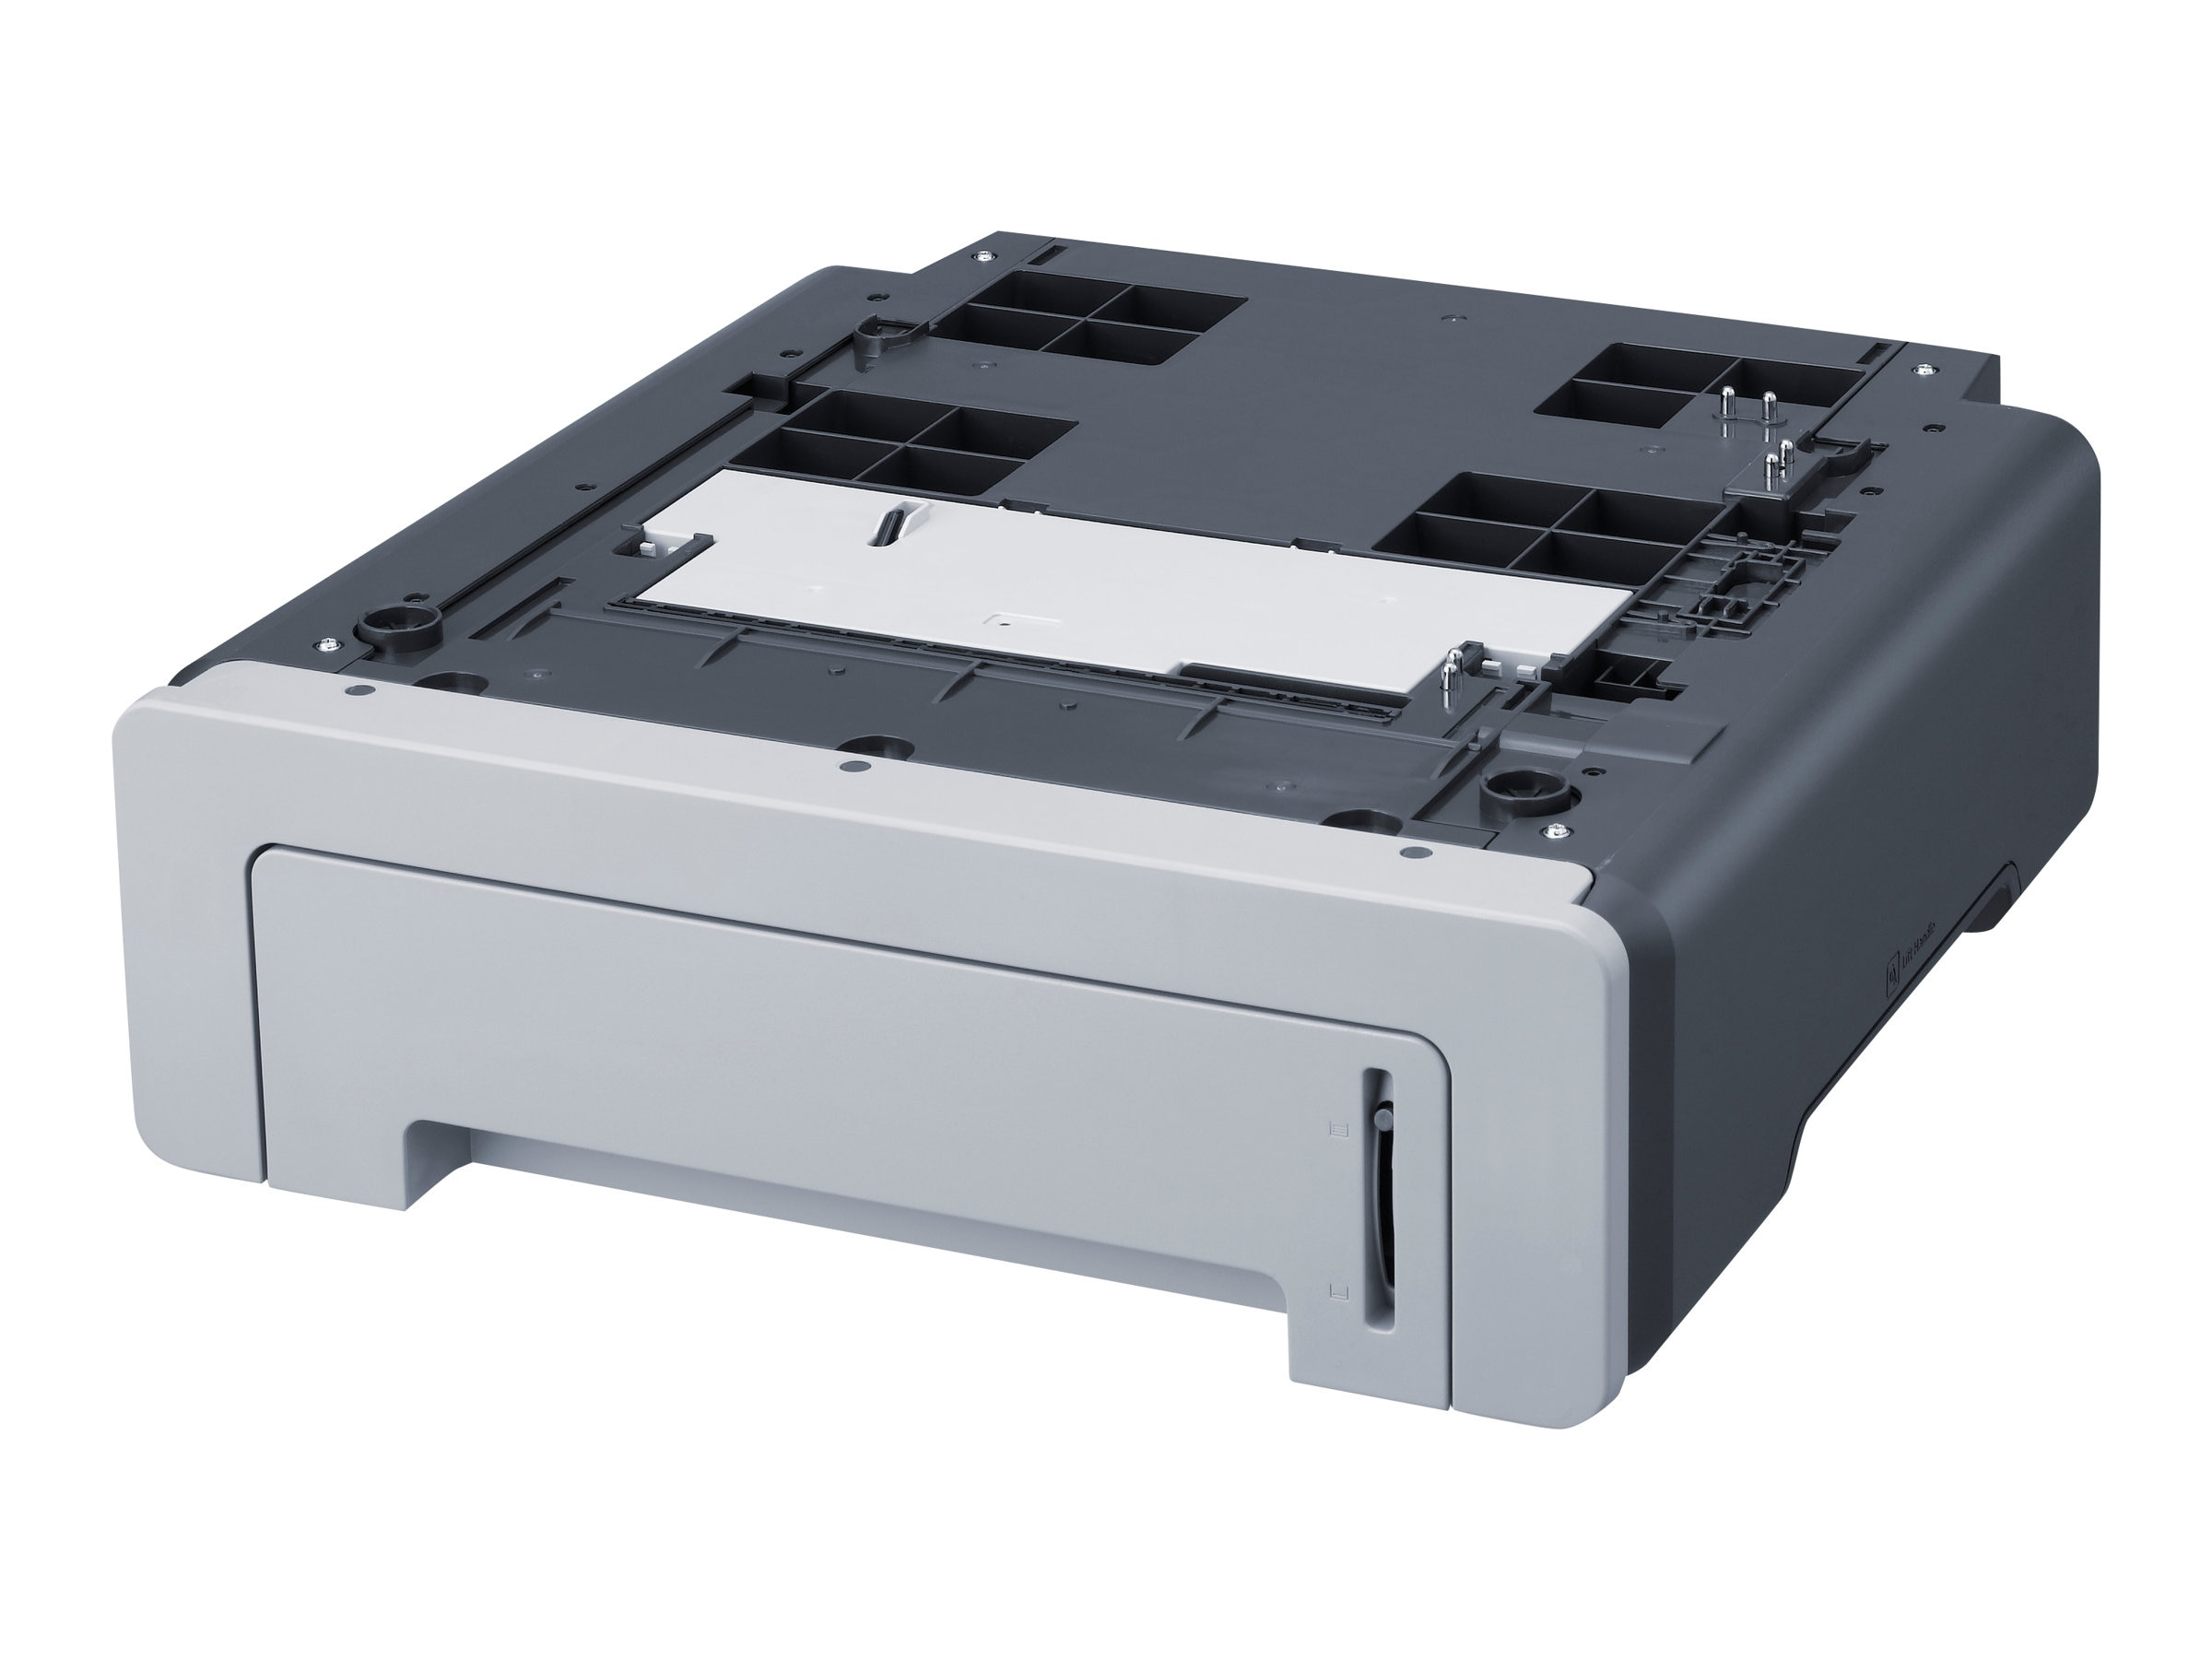 Samsung 500-Sheet Second Cassette Feeder for CLP-620ND & CLP-670ND Color Laser Printers, CLP-S670A